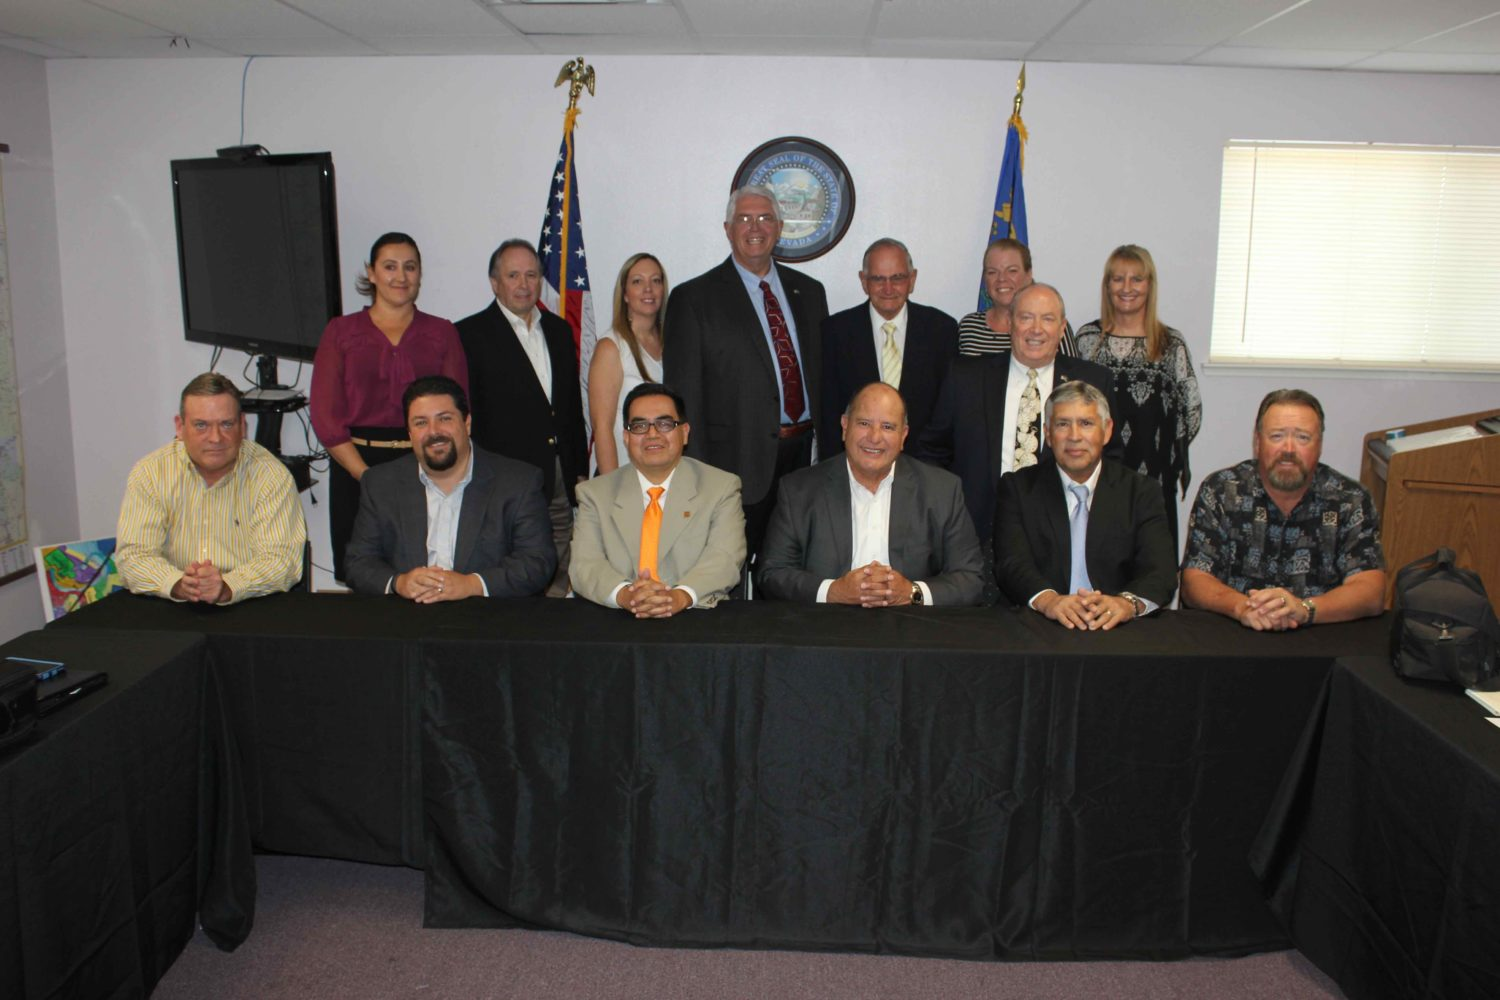 nevada rural housing authority announces collaboration cplc nevada rural housing authority nrha has signed a for zed agreement cplc nevada